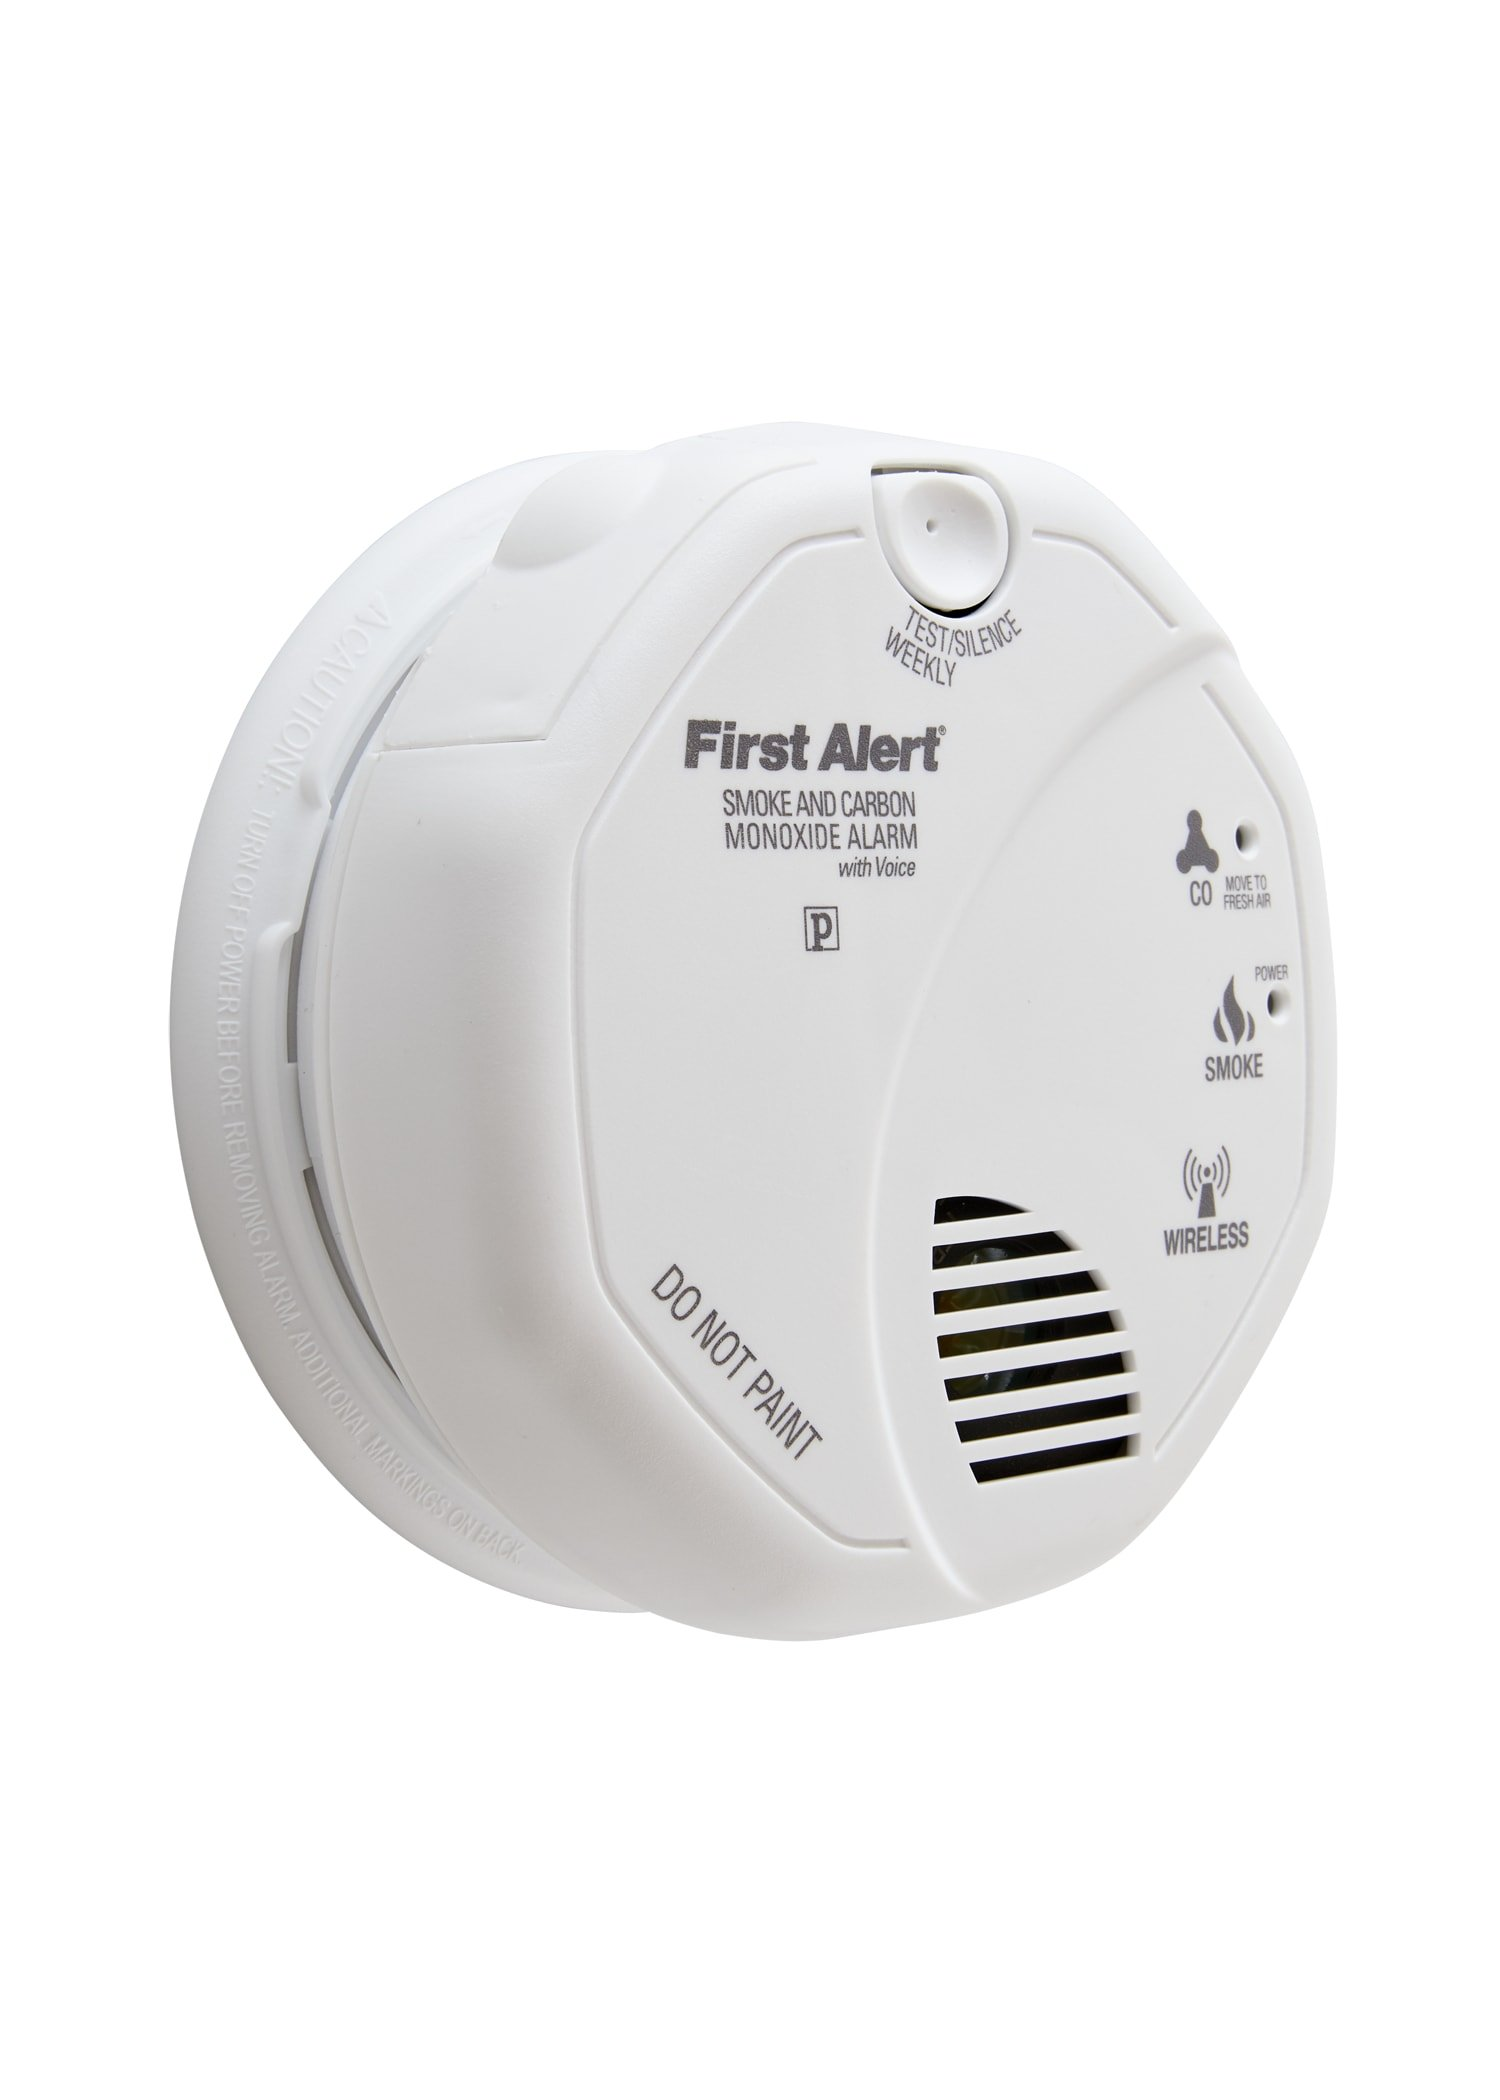 First Alert Wireless Interconnected Photoelectric Smoke and Carbon Monoxide Combo Alarm with Voice and Location, SCO500B by First Alert